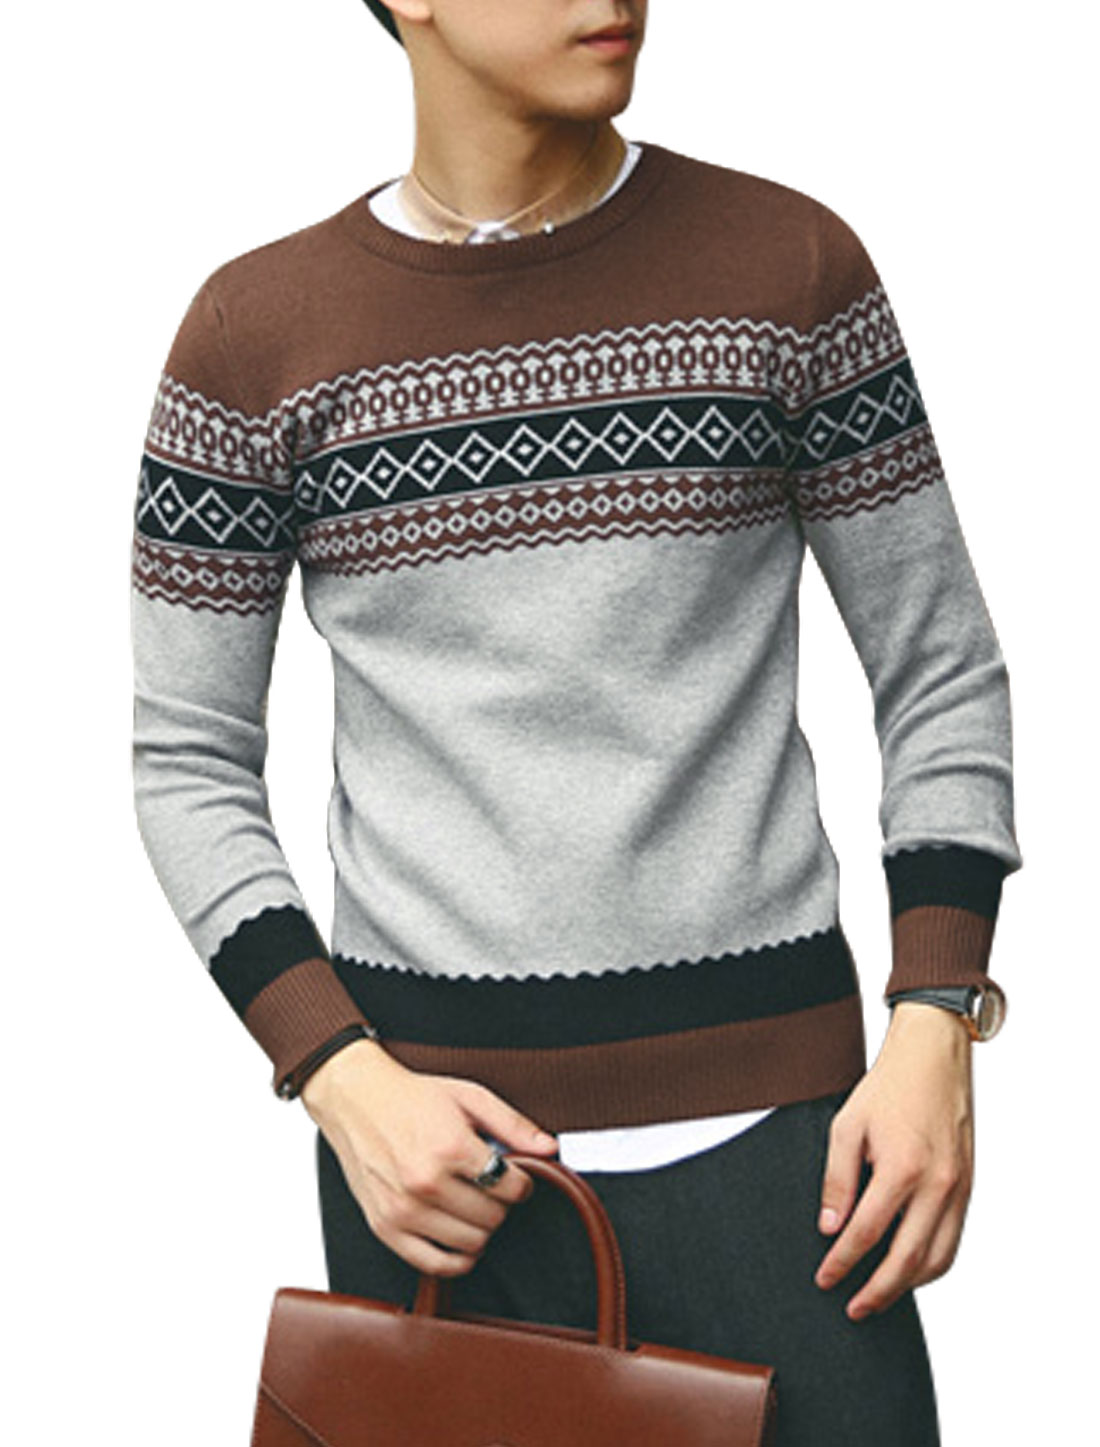 Men Crew Neck Argyle Pattern Zigzag Pattern Slim Casual Sweater Brown Light Gray S